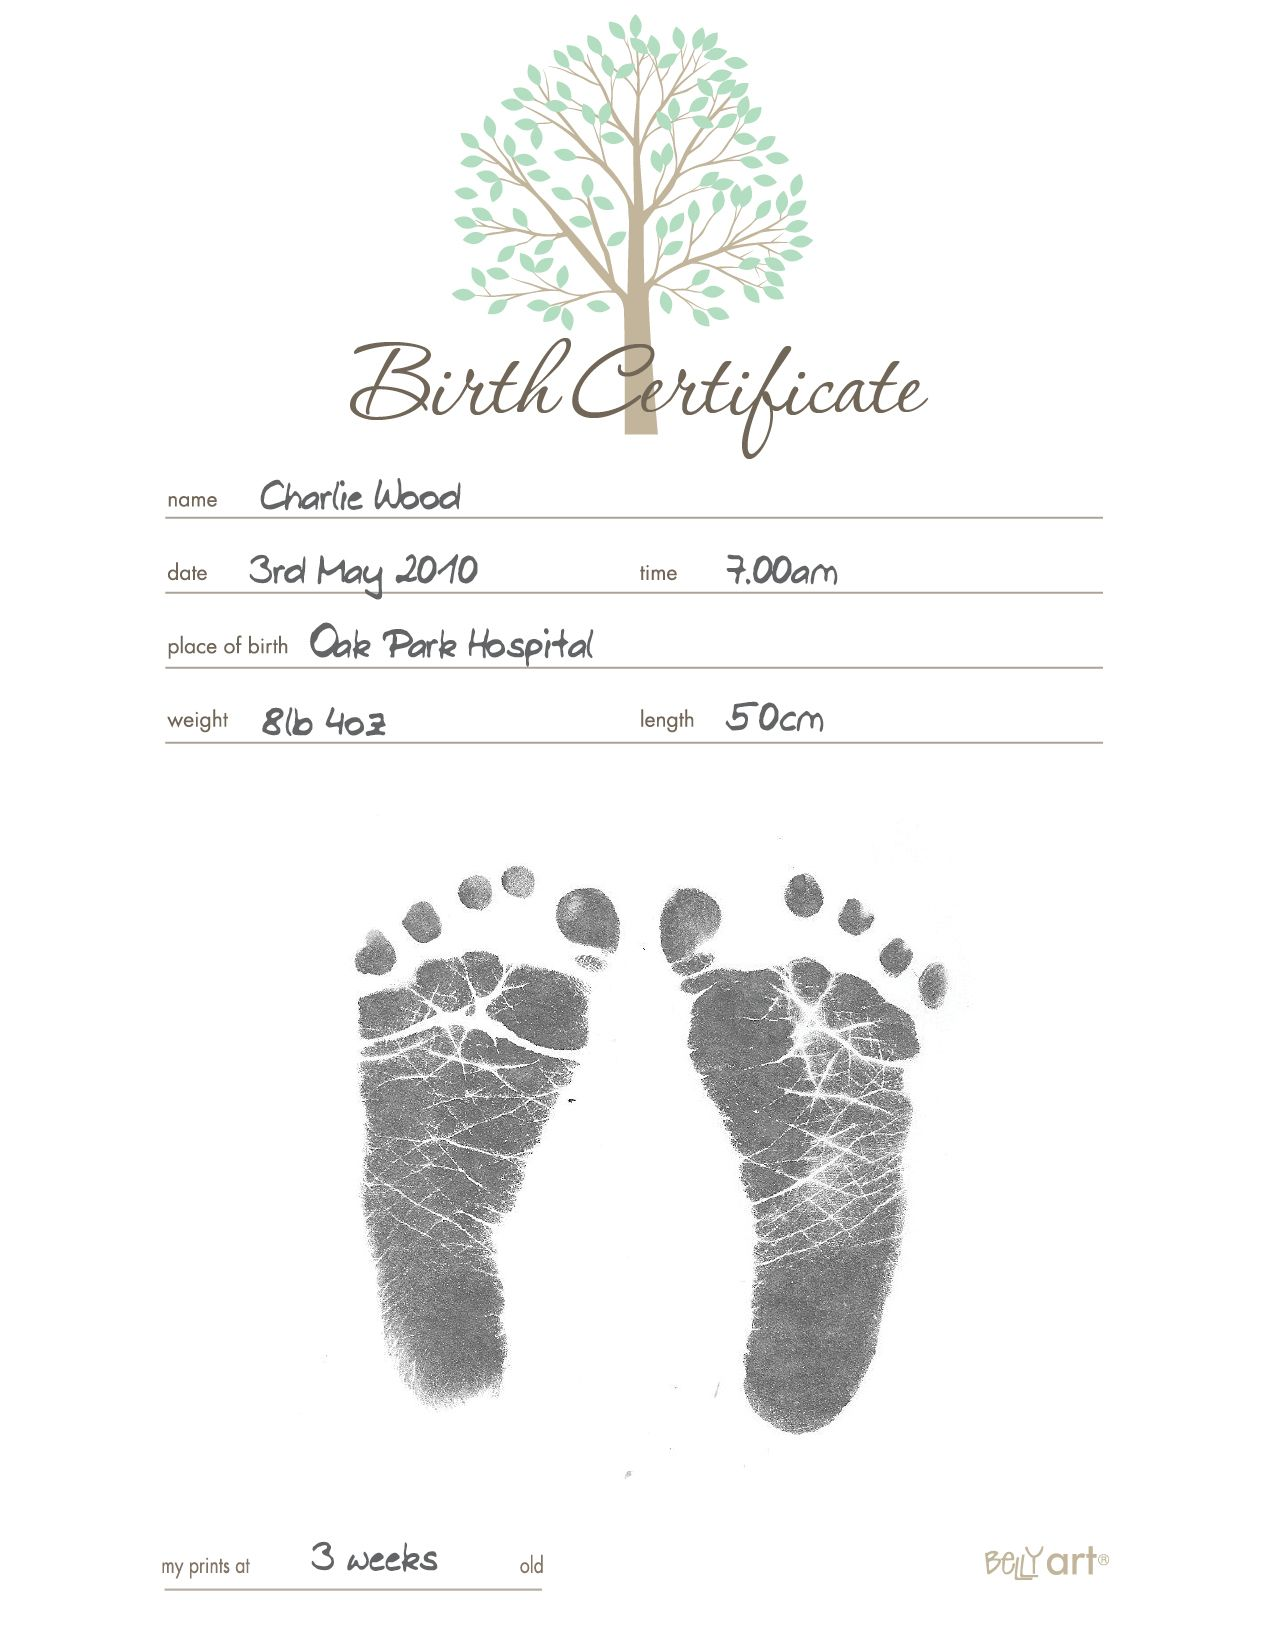 Belly Art Inkless Birth Certificate Apostille Birth Certificate